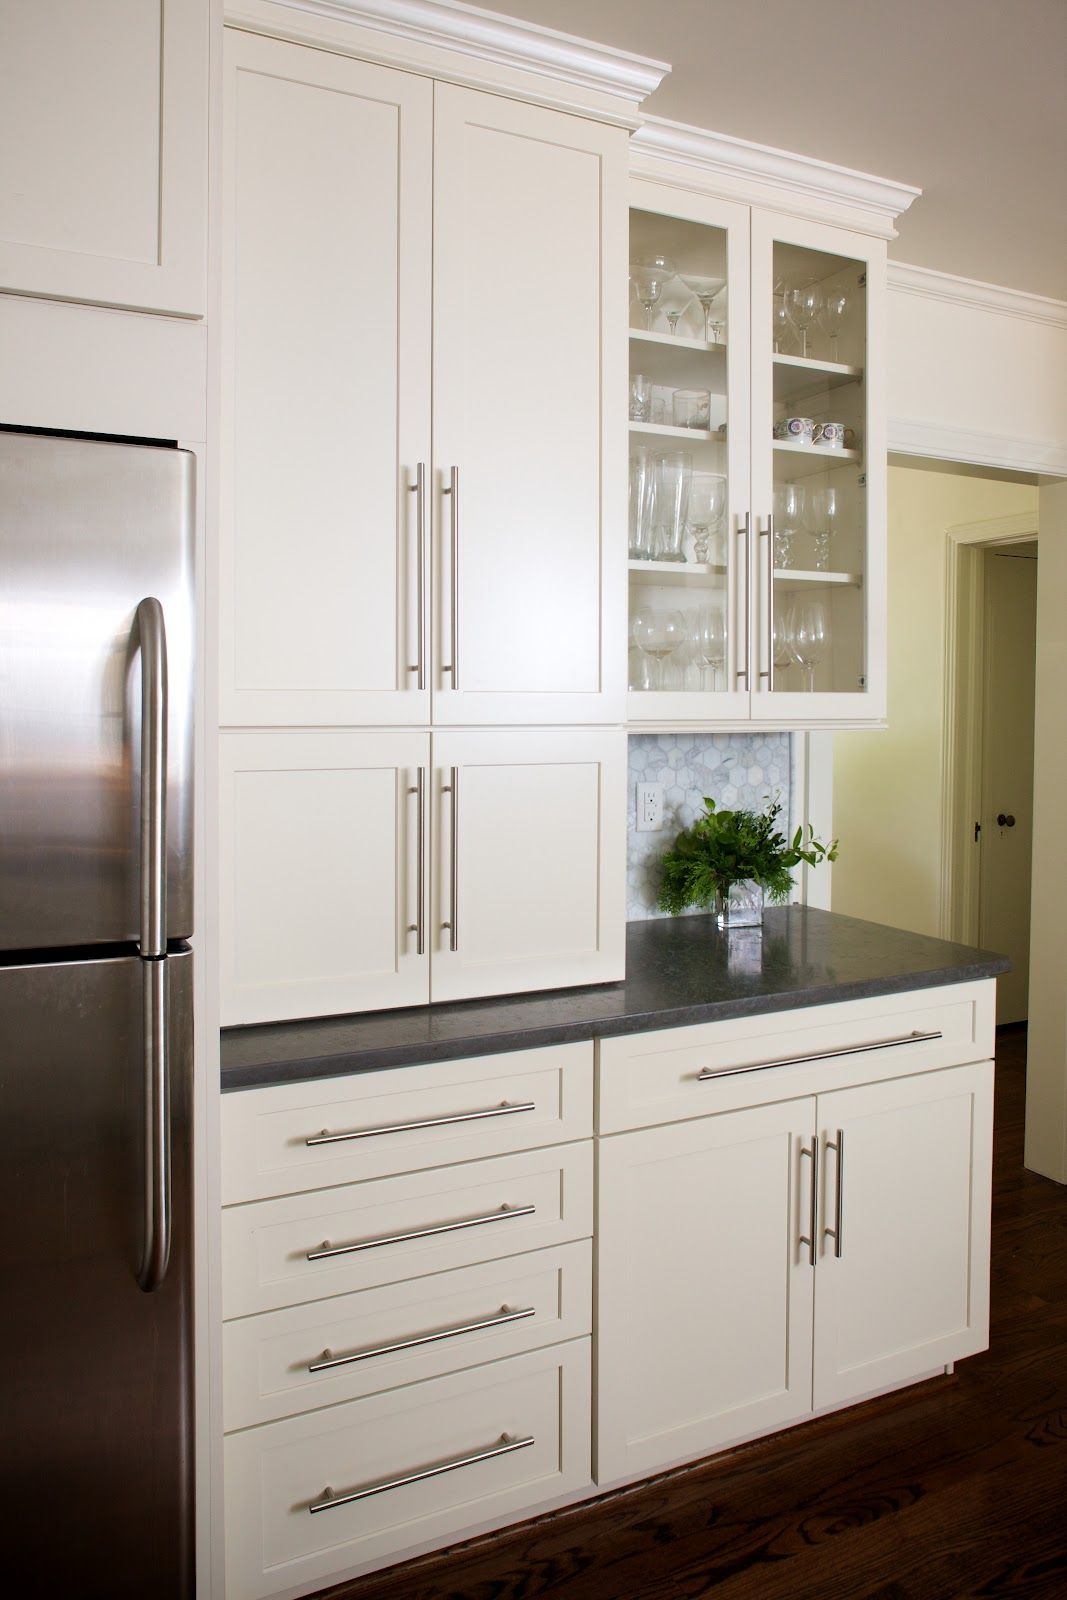 Hardware For White Kitchen Cabinets Table Rug Classic And Modern Just This Picture Not A